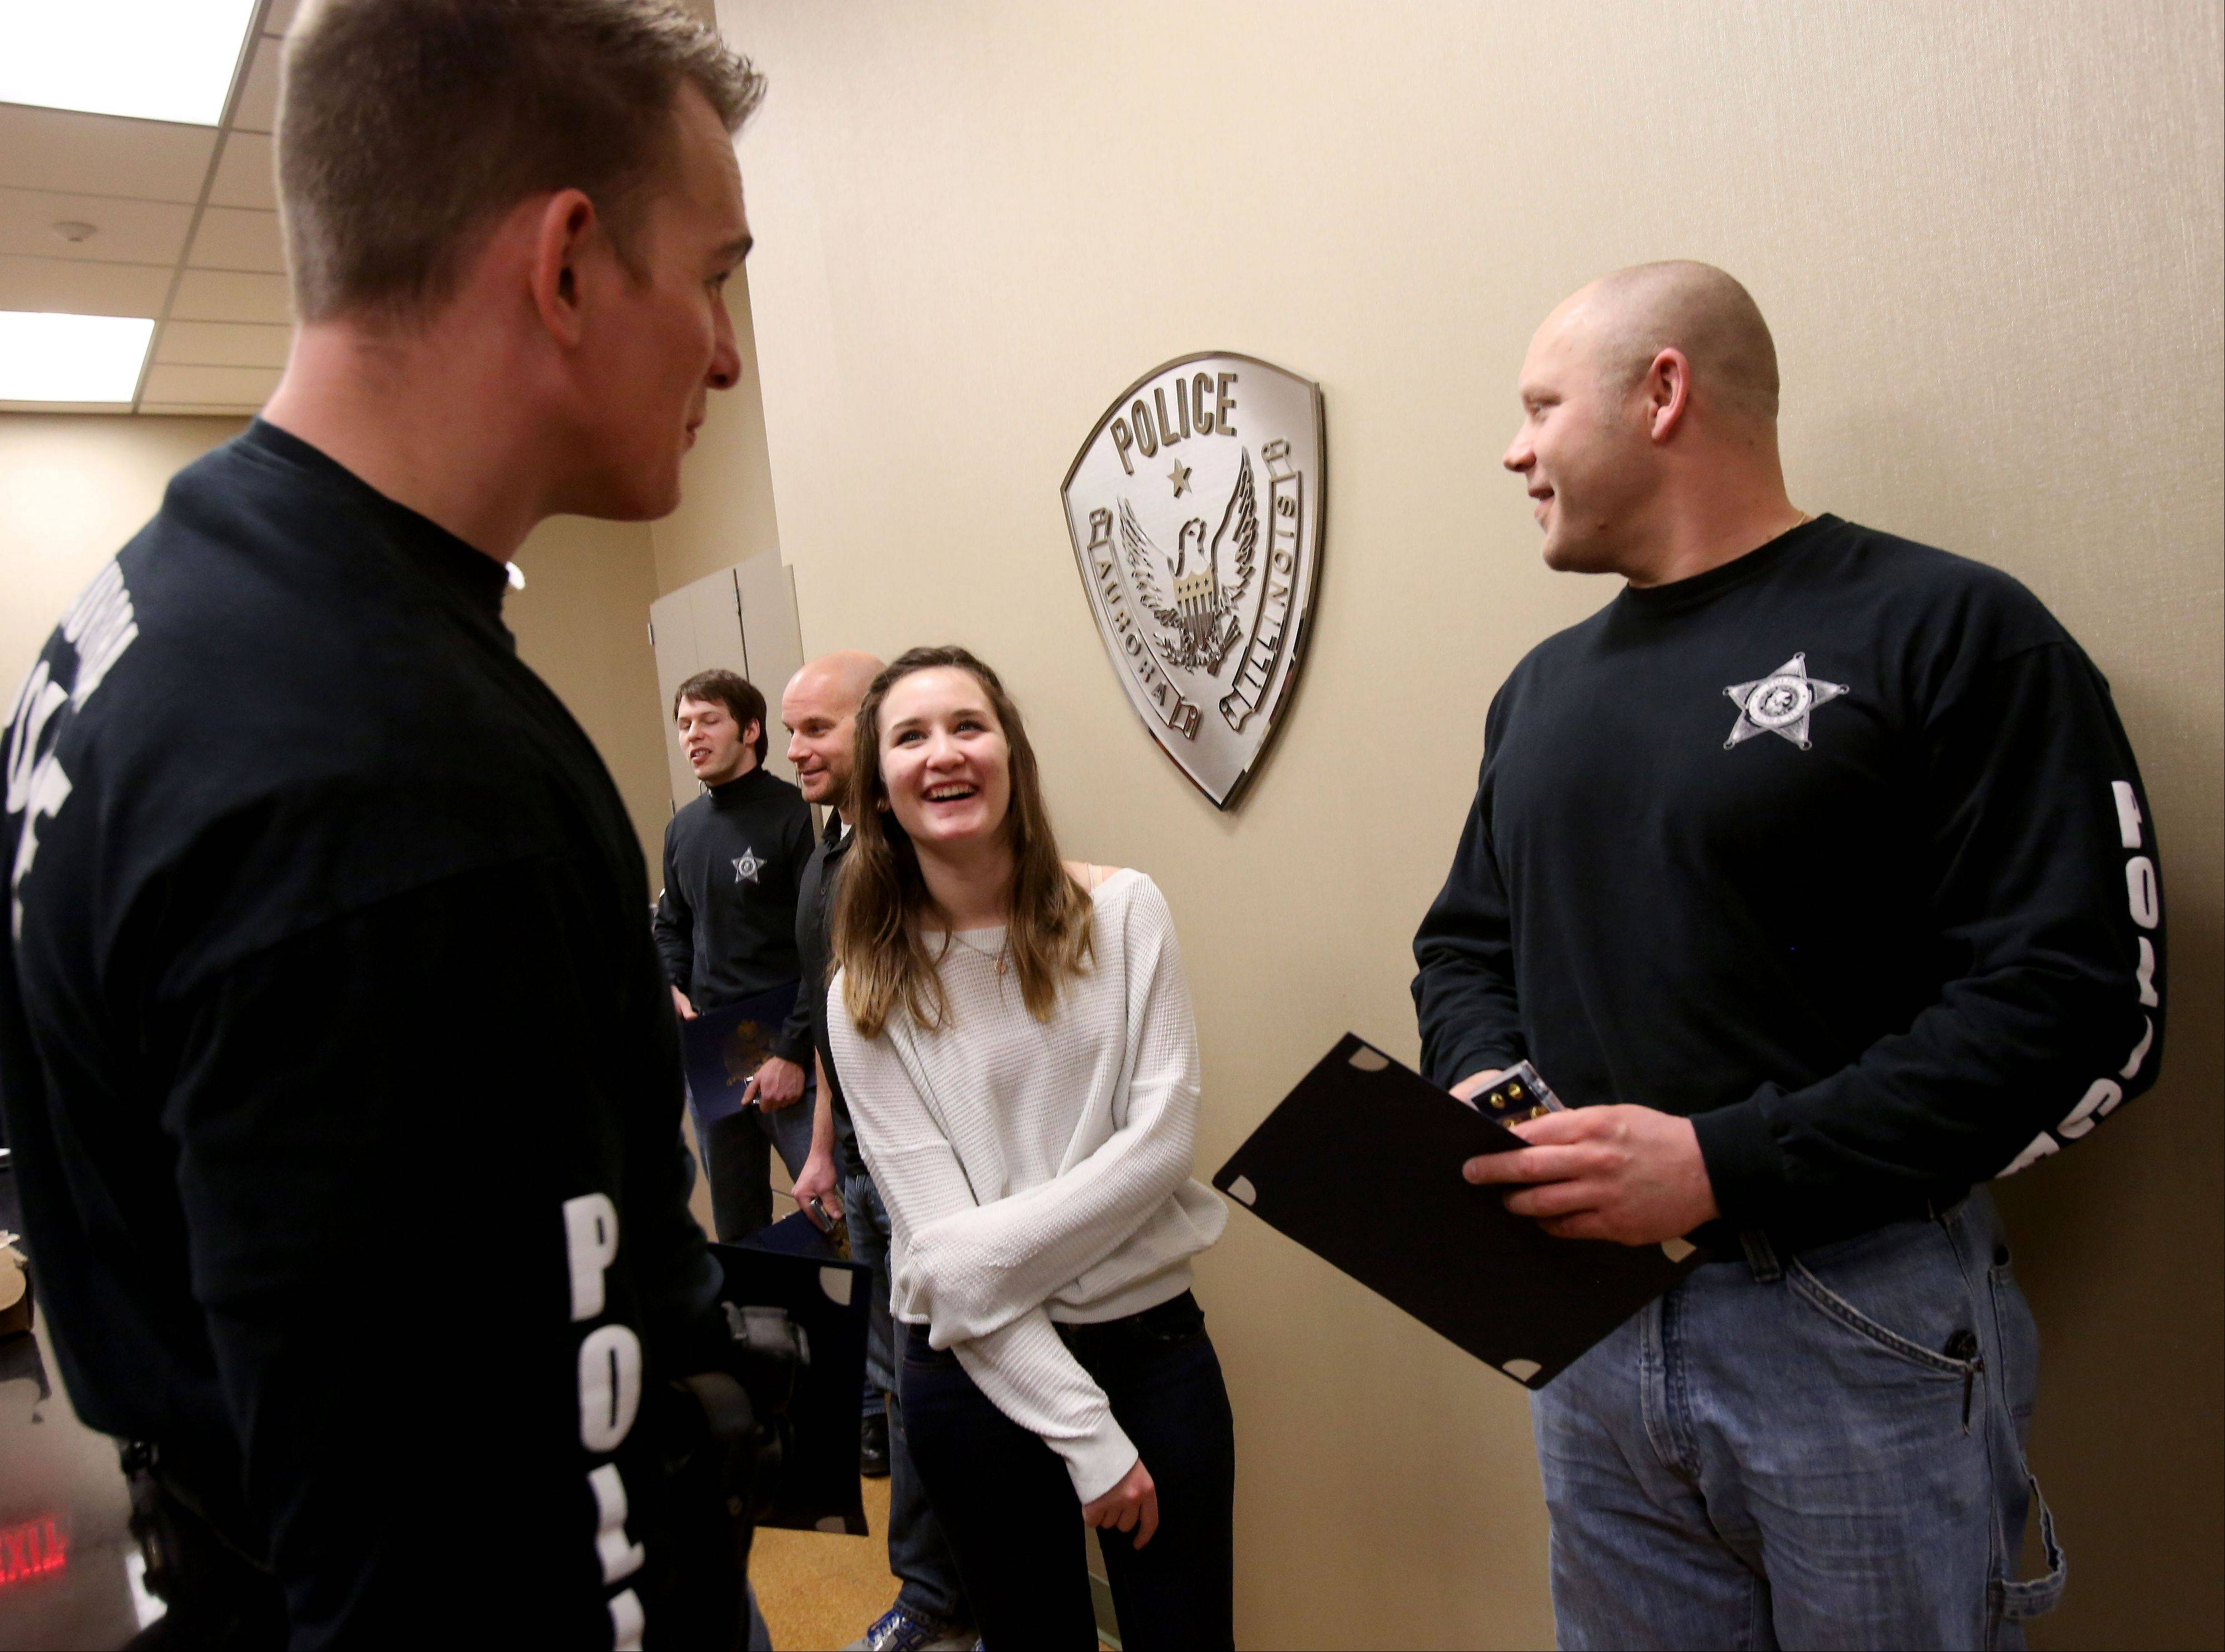 Bev Horne/bhorne@dailyherald.comAnnie Prosser, 15, chats with officers Edwin Doepel, left, and W. Joshua Sullivan after the local Fox Valley Chapter of the Sons of the American Revolution recognized seven Aurora police officers who saved her life from drowning last year when a car she was in went into a retention pond.